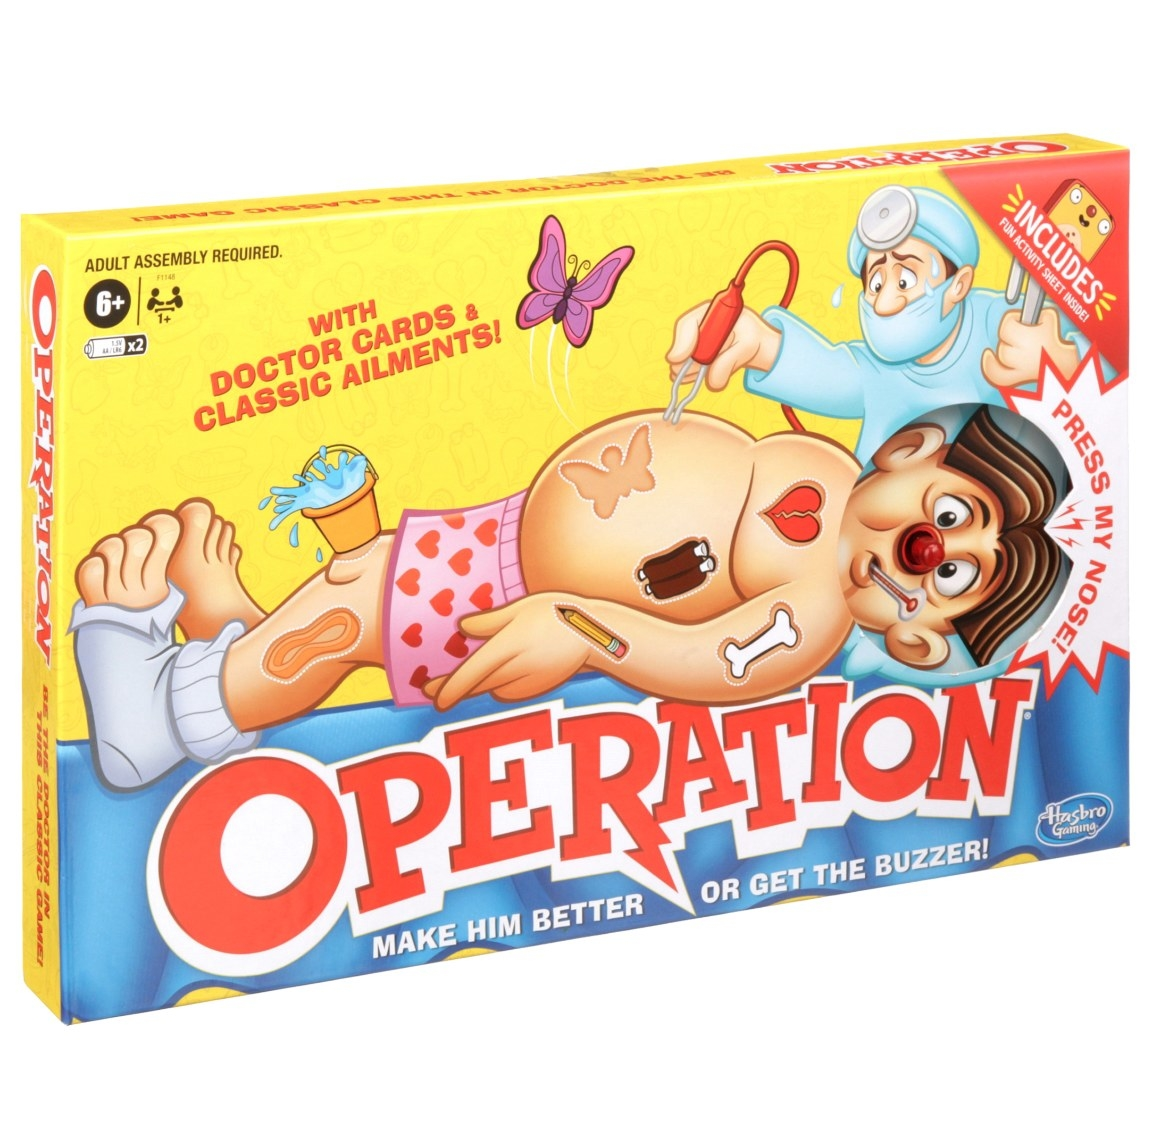 The game of operation in its package